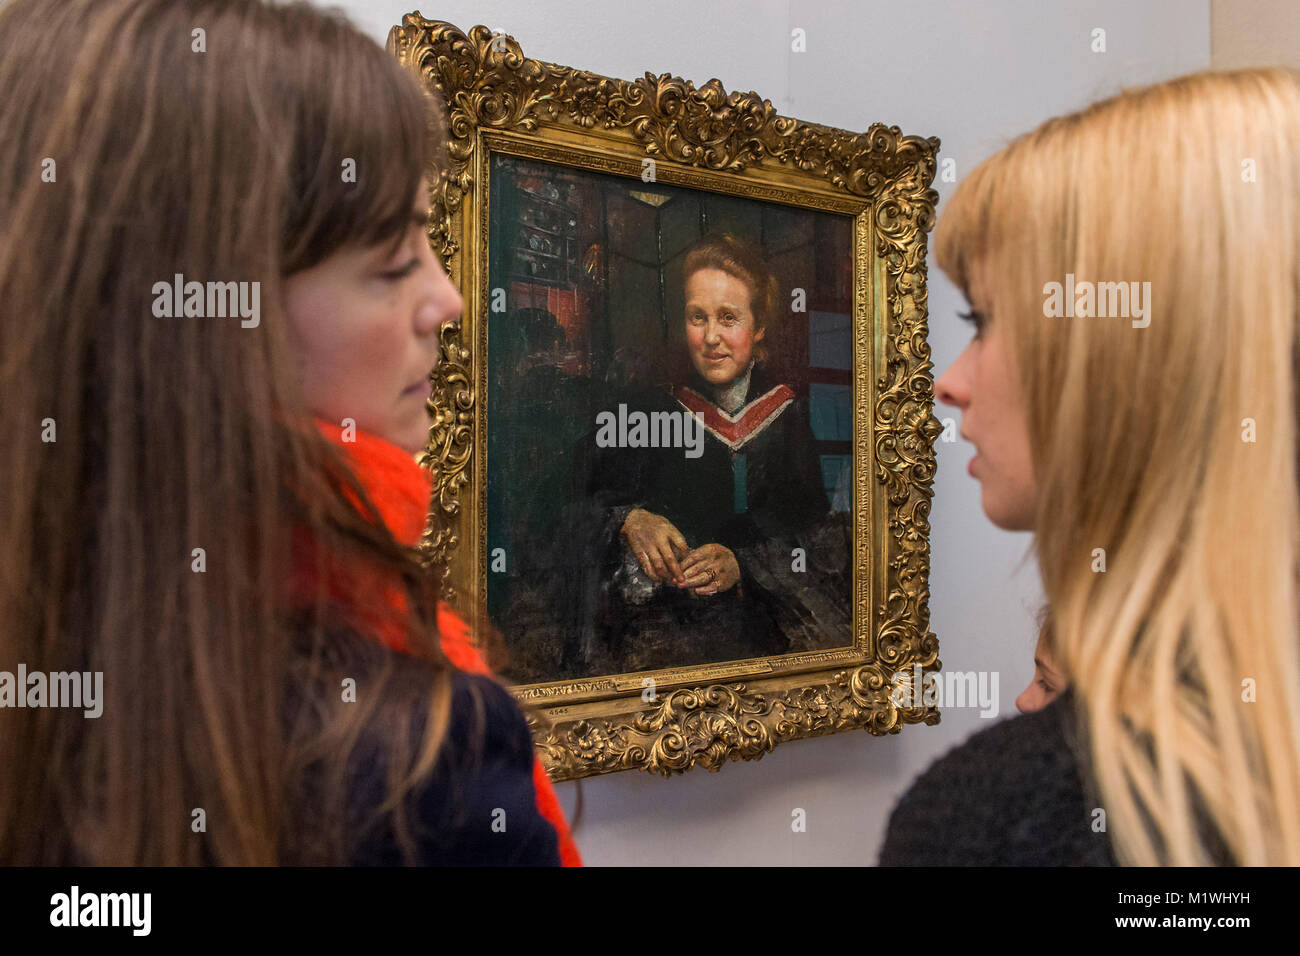 London, UK. 2nd Feb, 2018. Millicent Fawcett by Annie Swynnerton, newly on display at Tate Britain.  Fawcett was - Stock Image